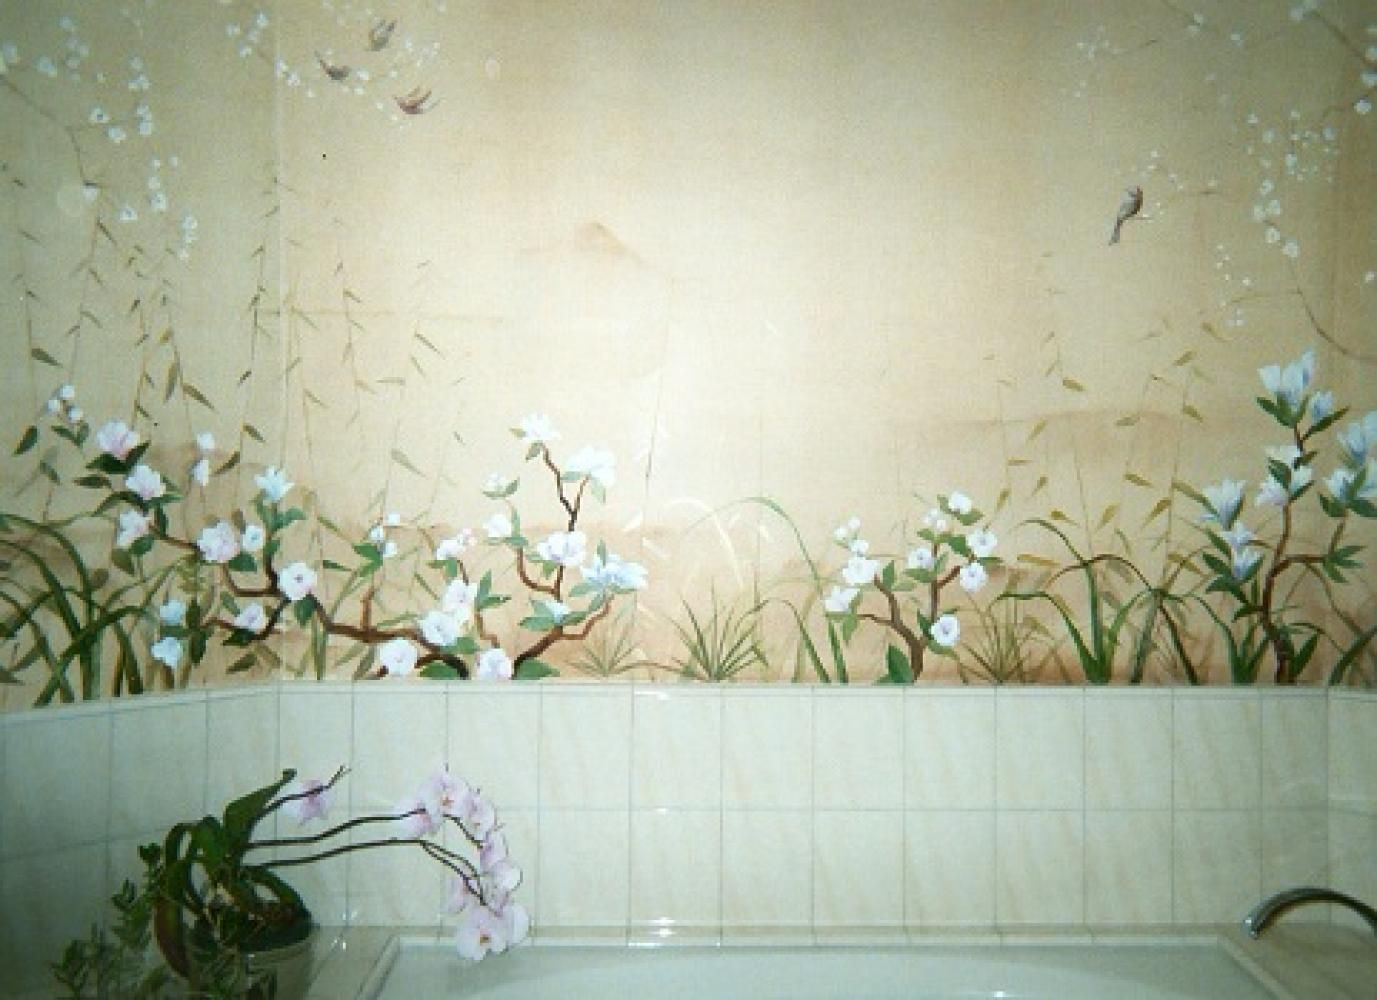 Japanese Mural For A Bathroom. Hand Painted Bathroom Mural. By Alexandra  Pastorino